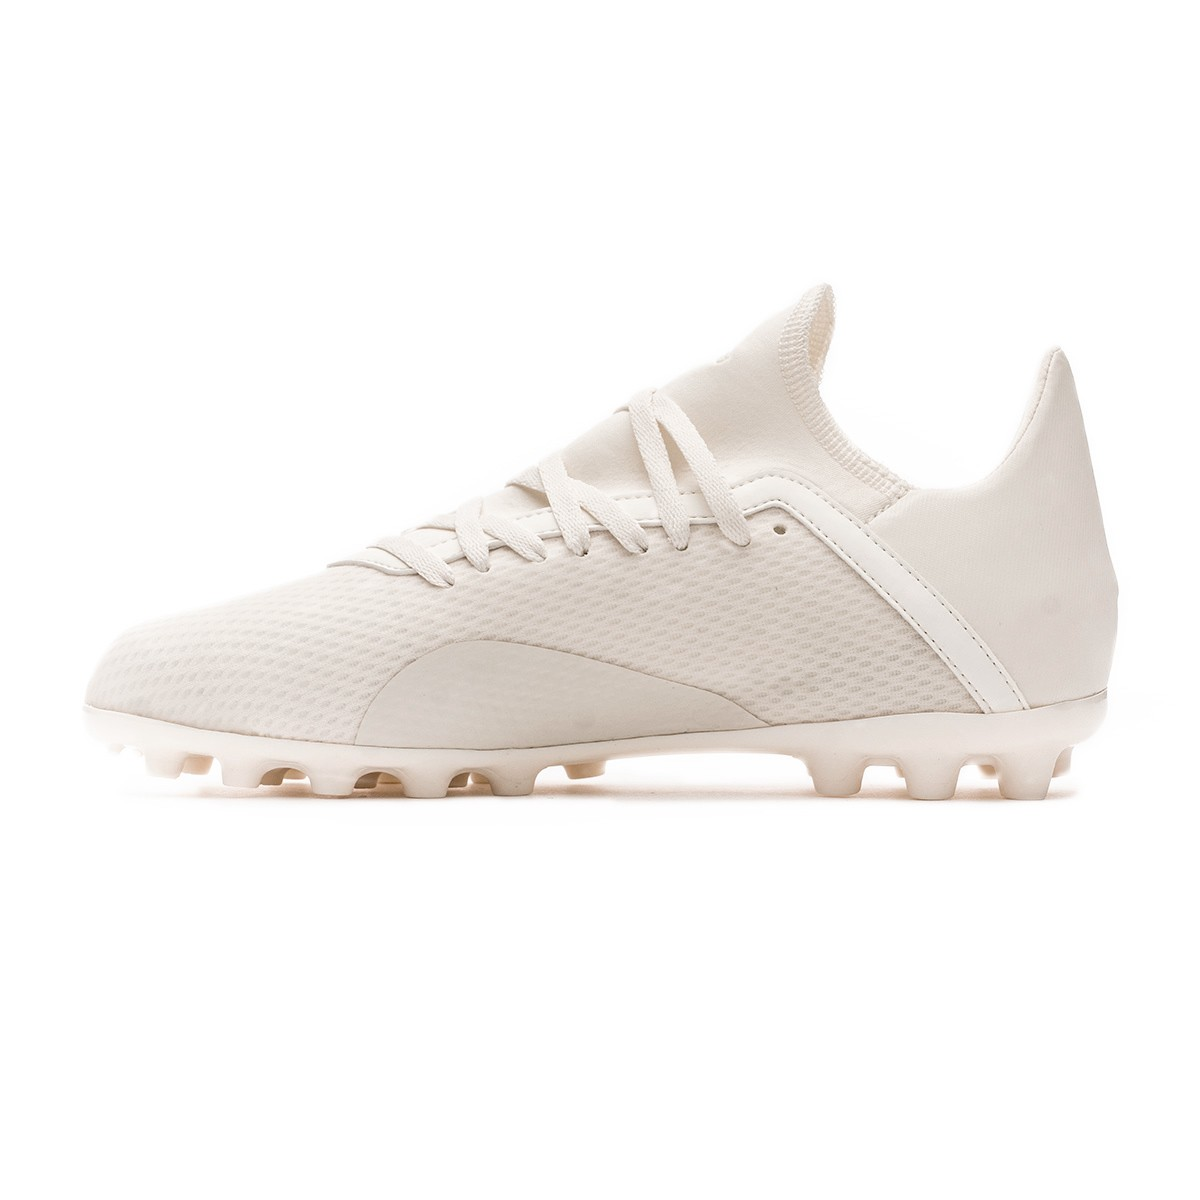 newest collection dcc35 542ca Boot adidas Kids X 18.3 AG Off white - Leaked soccer